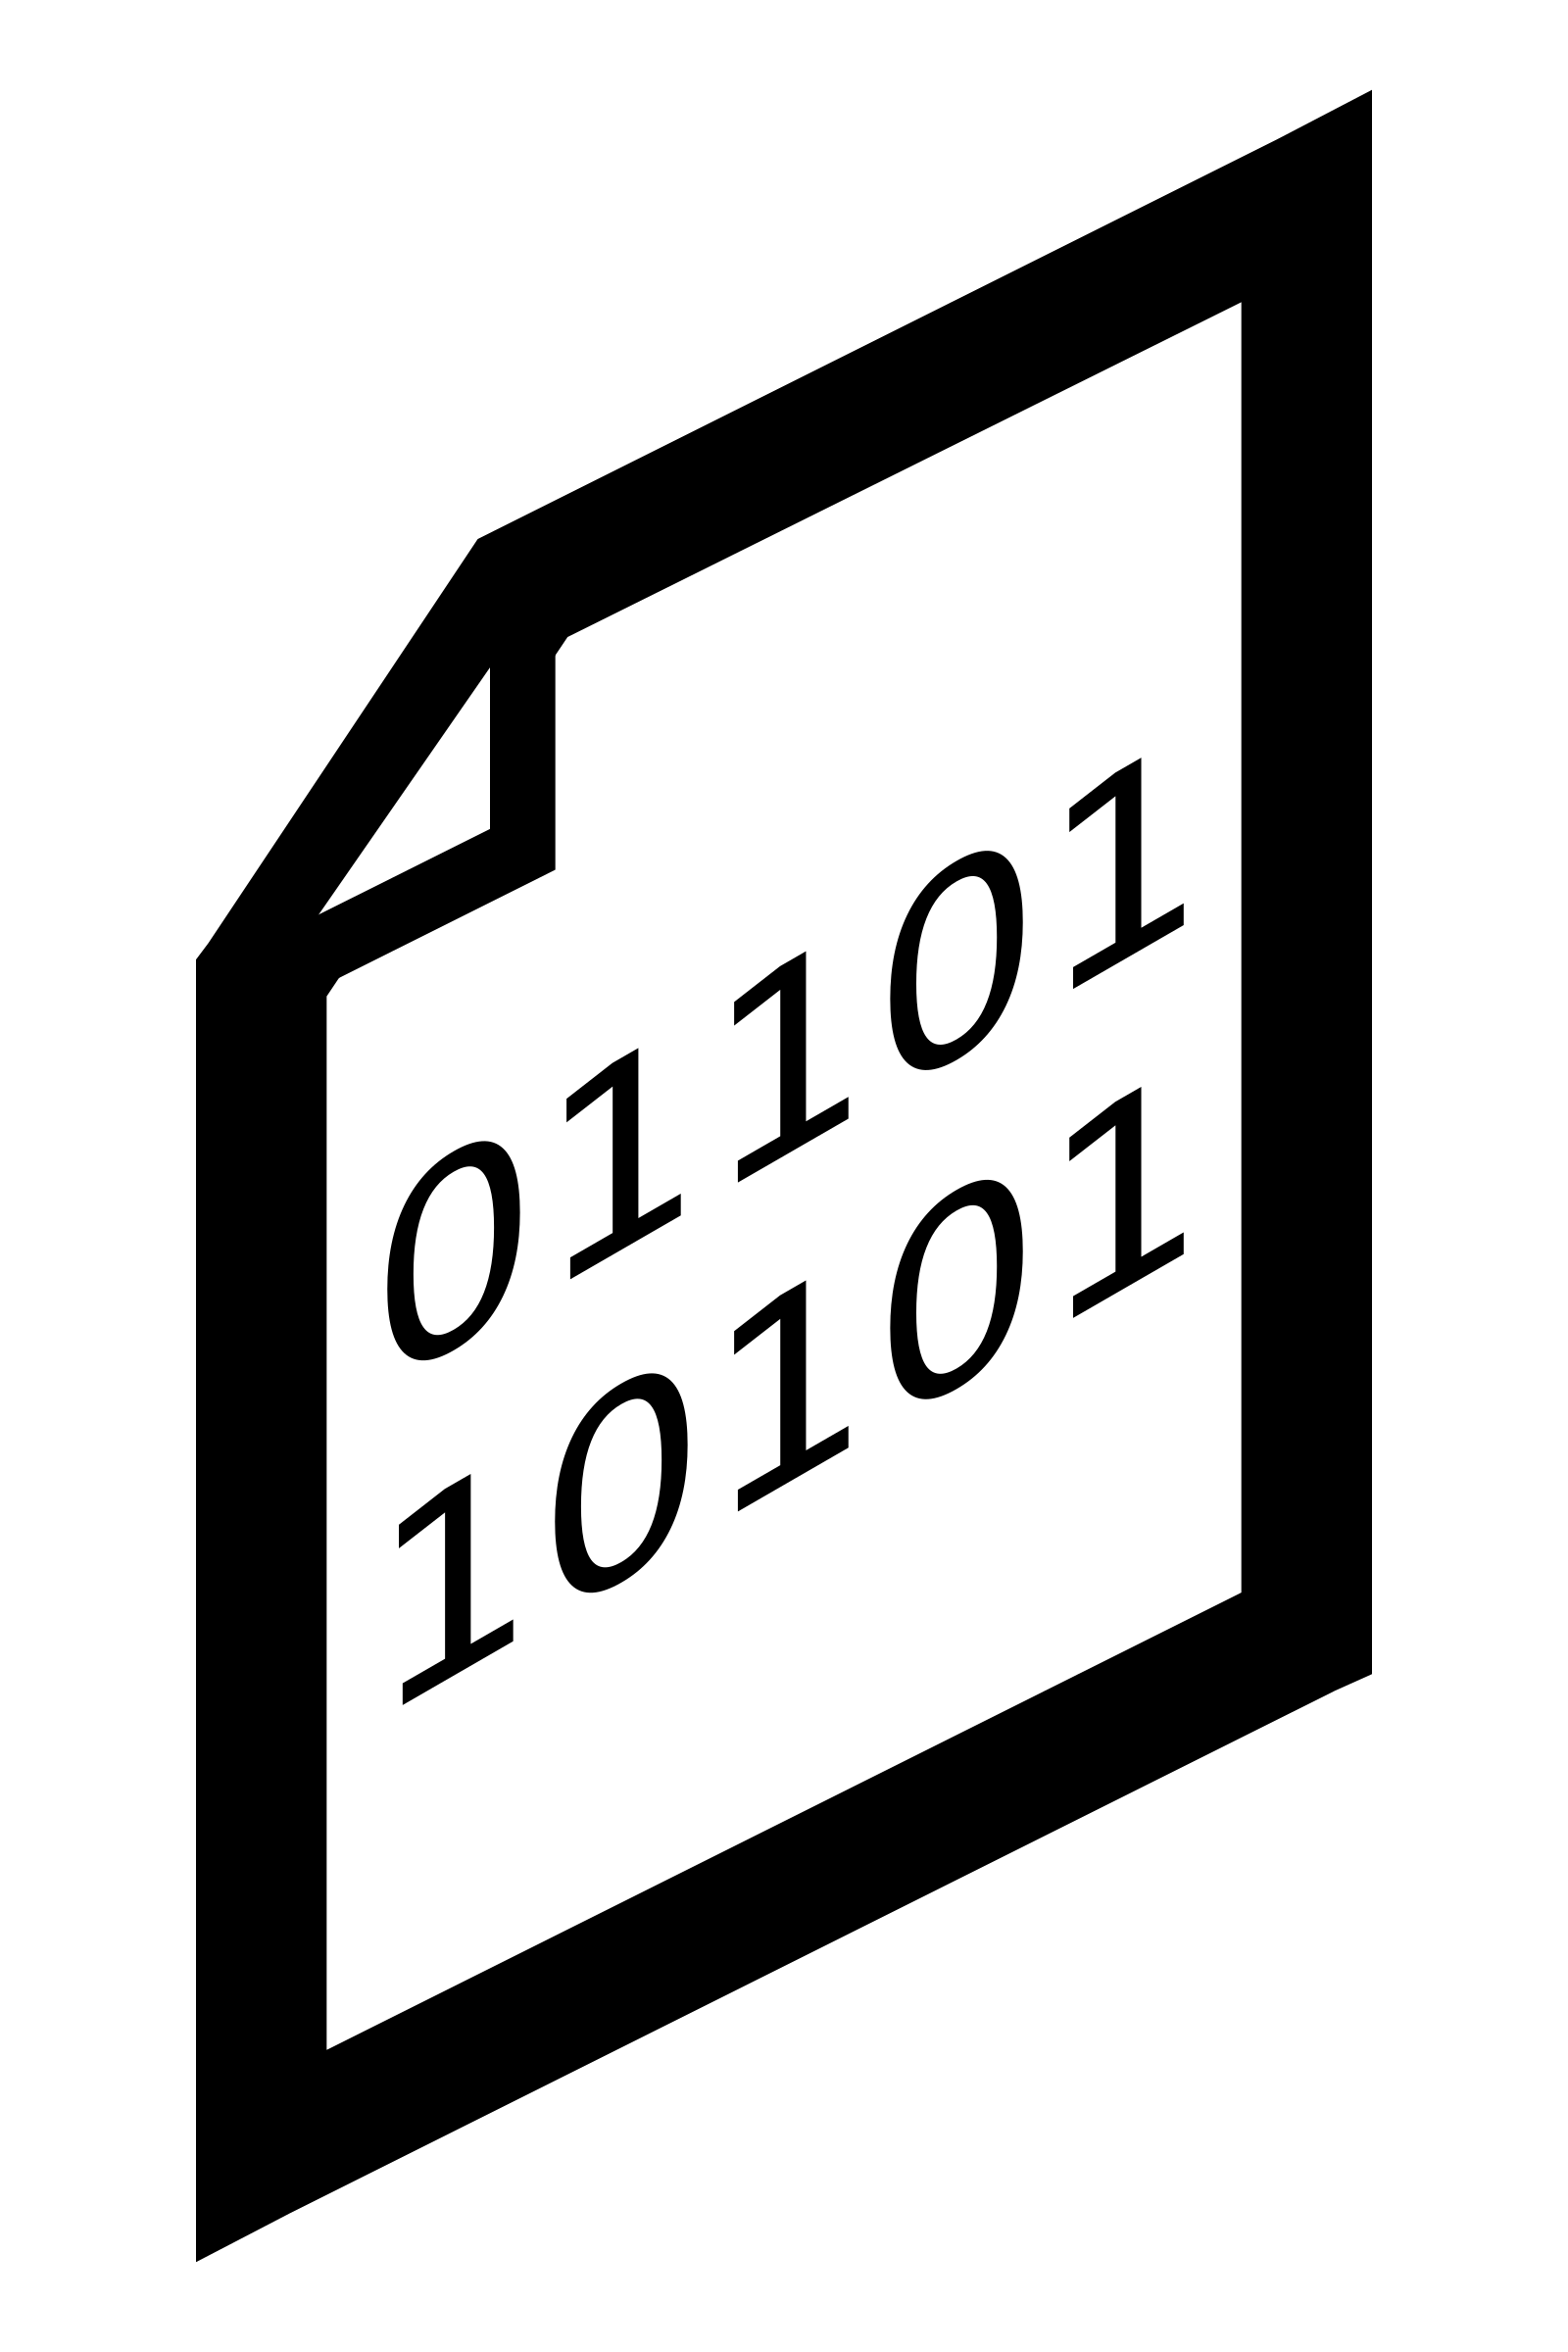 binary file by jcartier